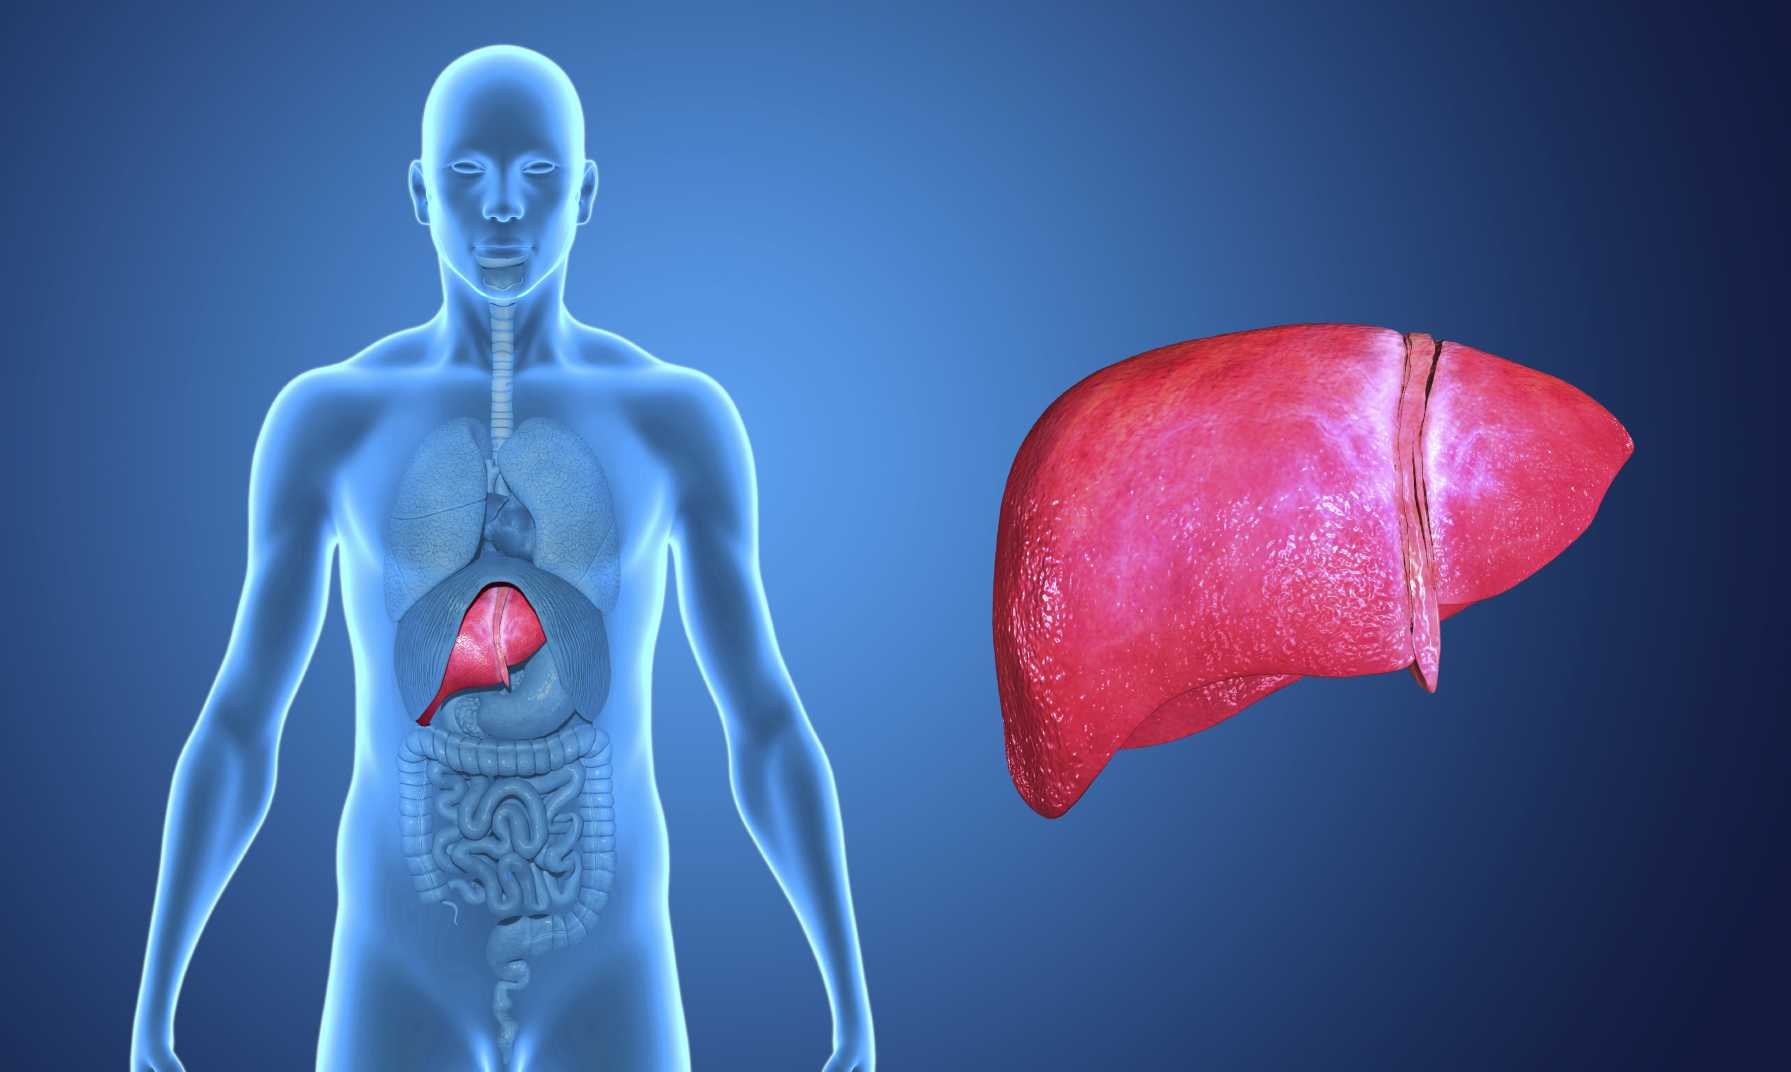 The Liver and Diabetes